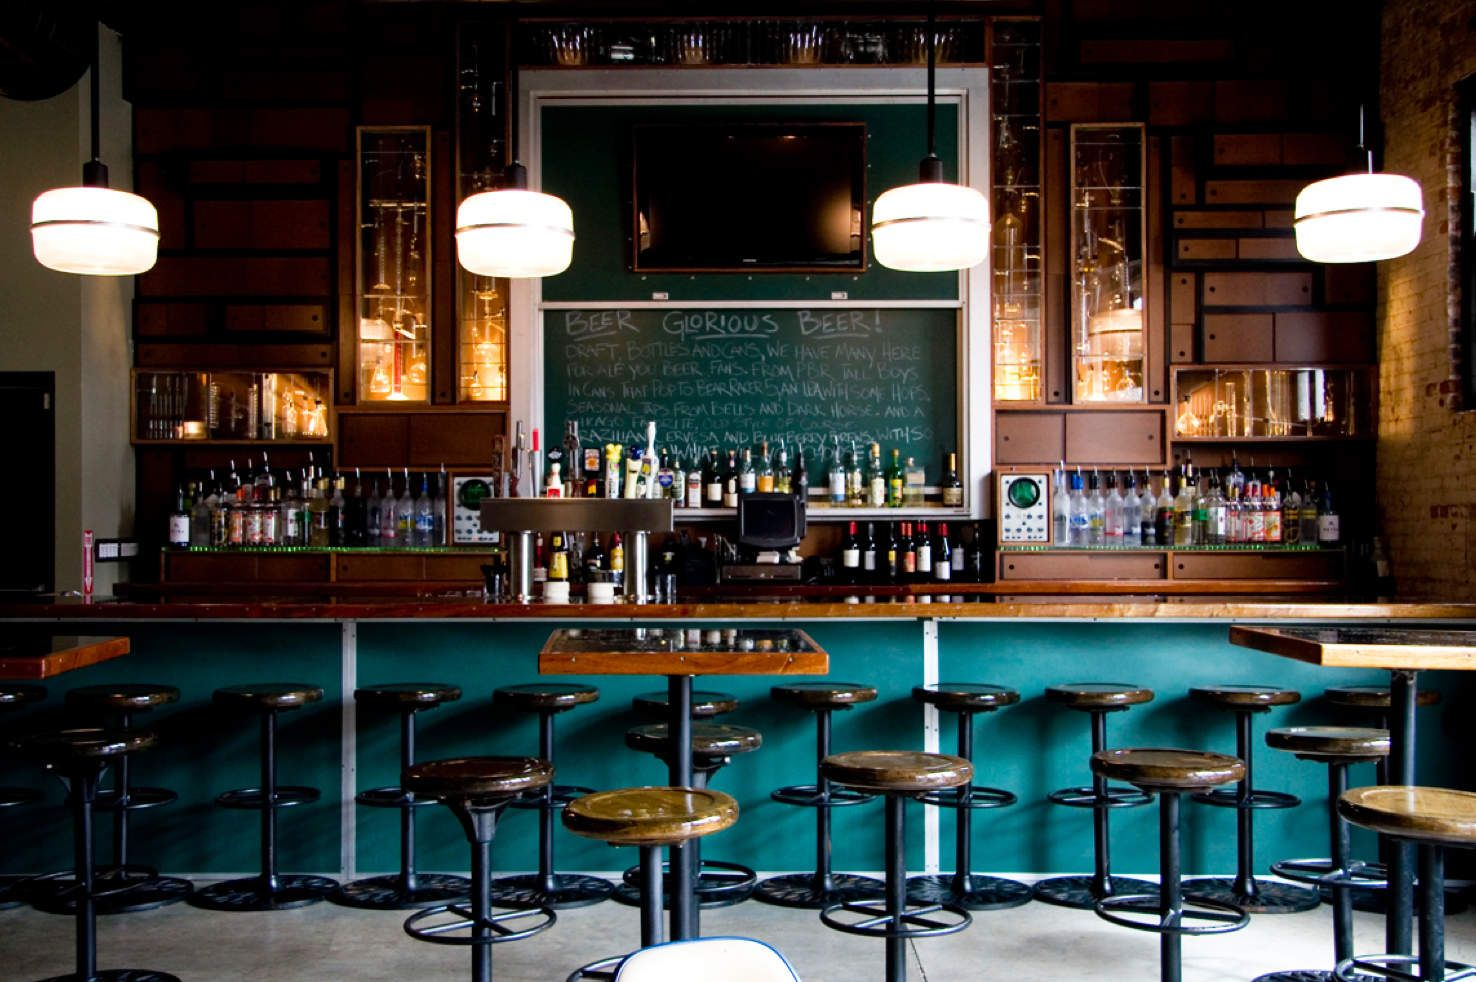 The 15 most hipster bars in Chicago, ranked | Chicago ...